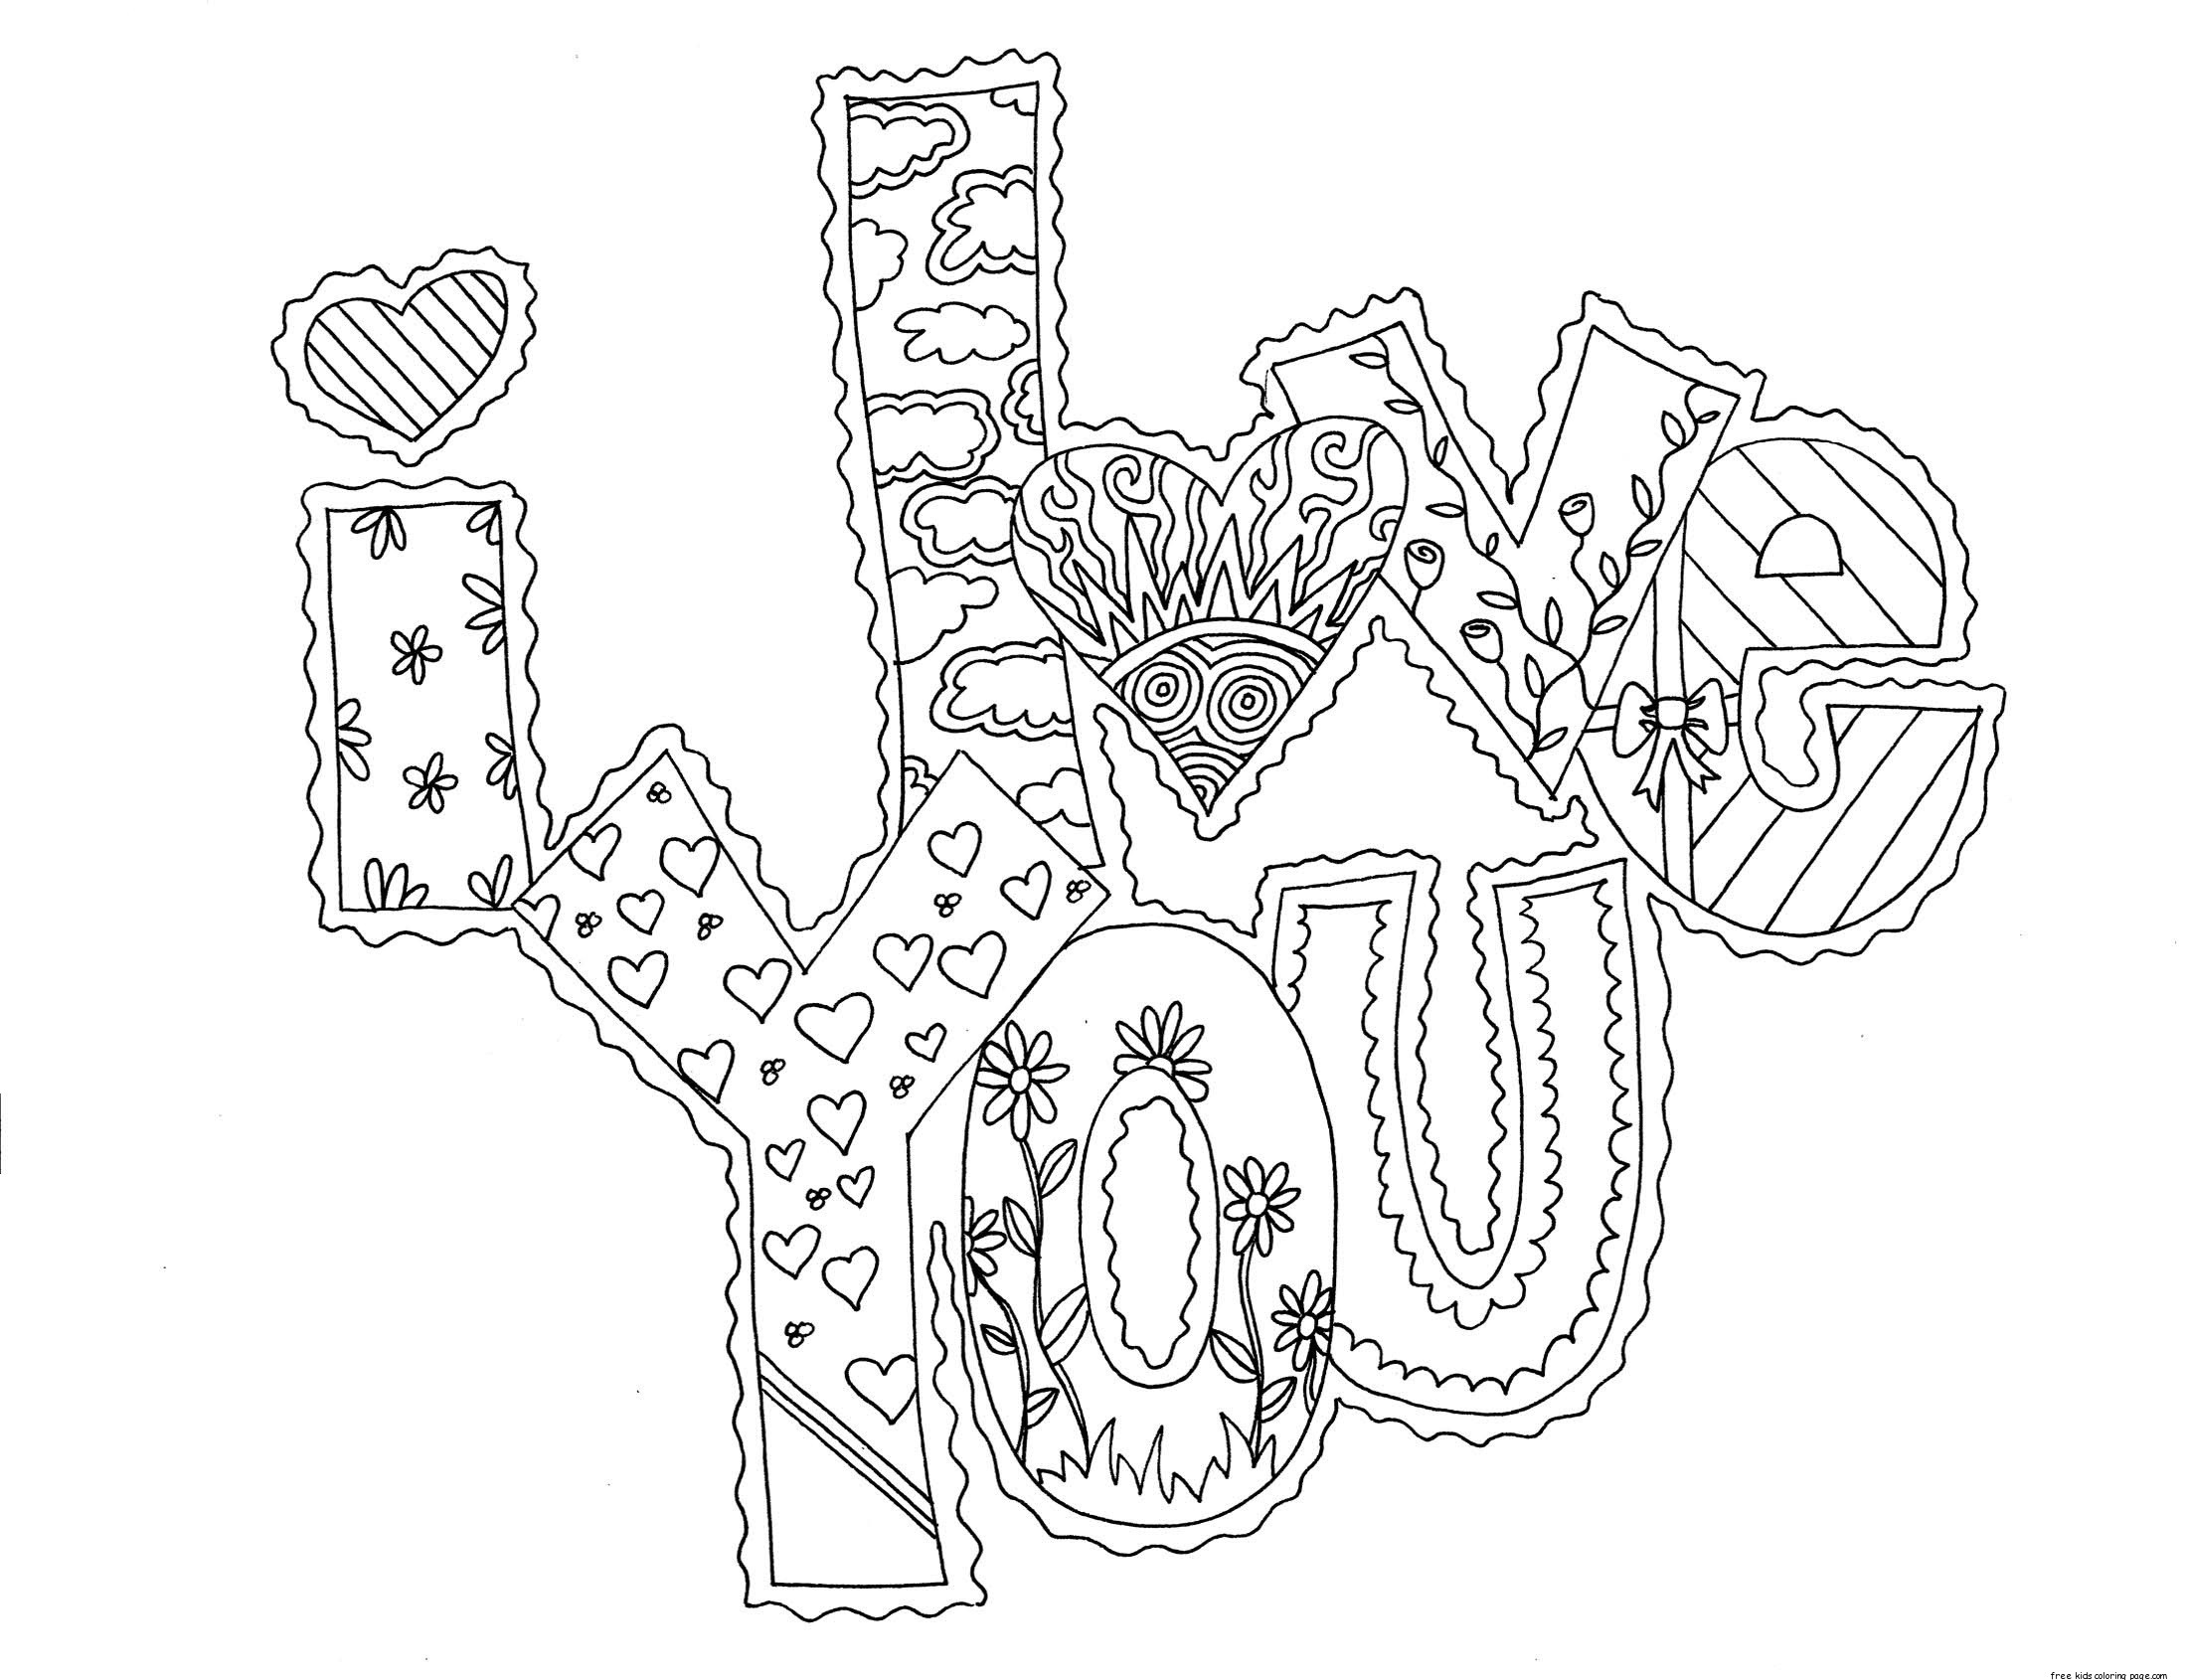 coloring pages about love - printable valentines day i love you card coloring pages free printable coloring pages for kids